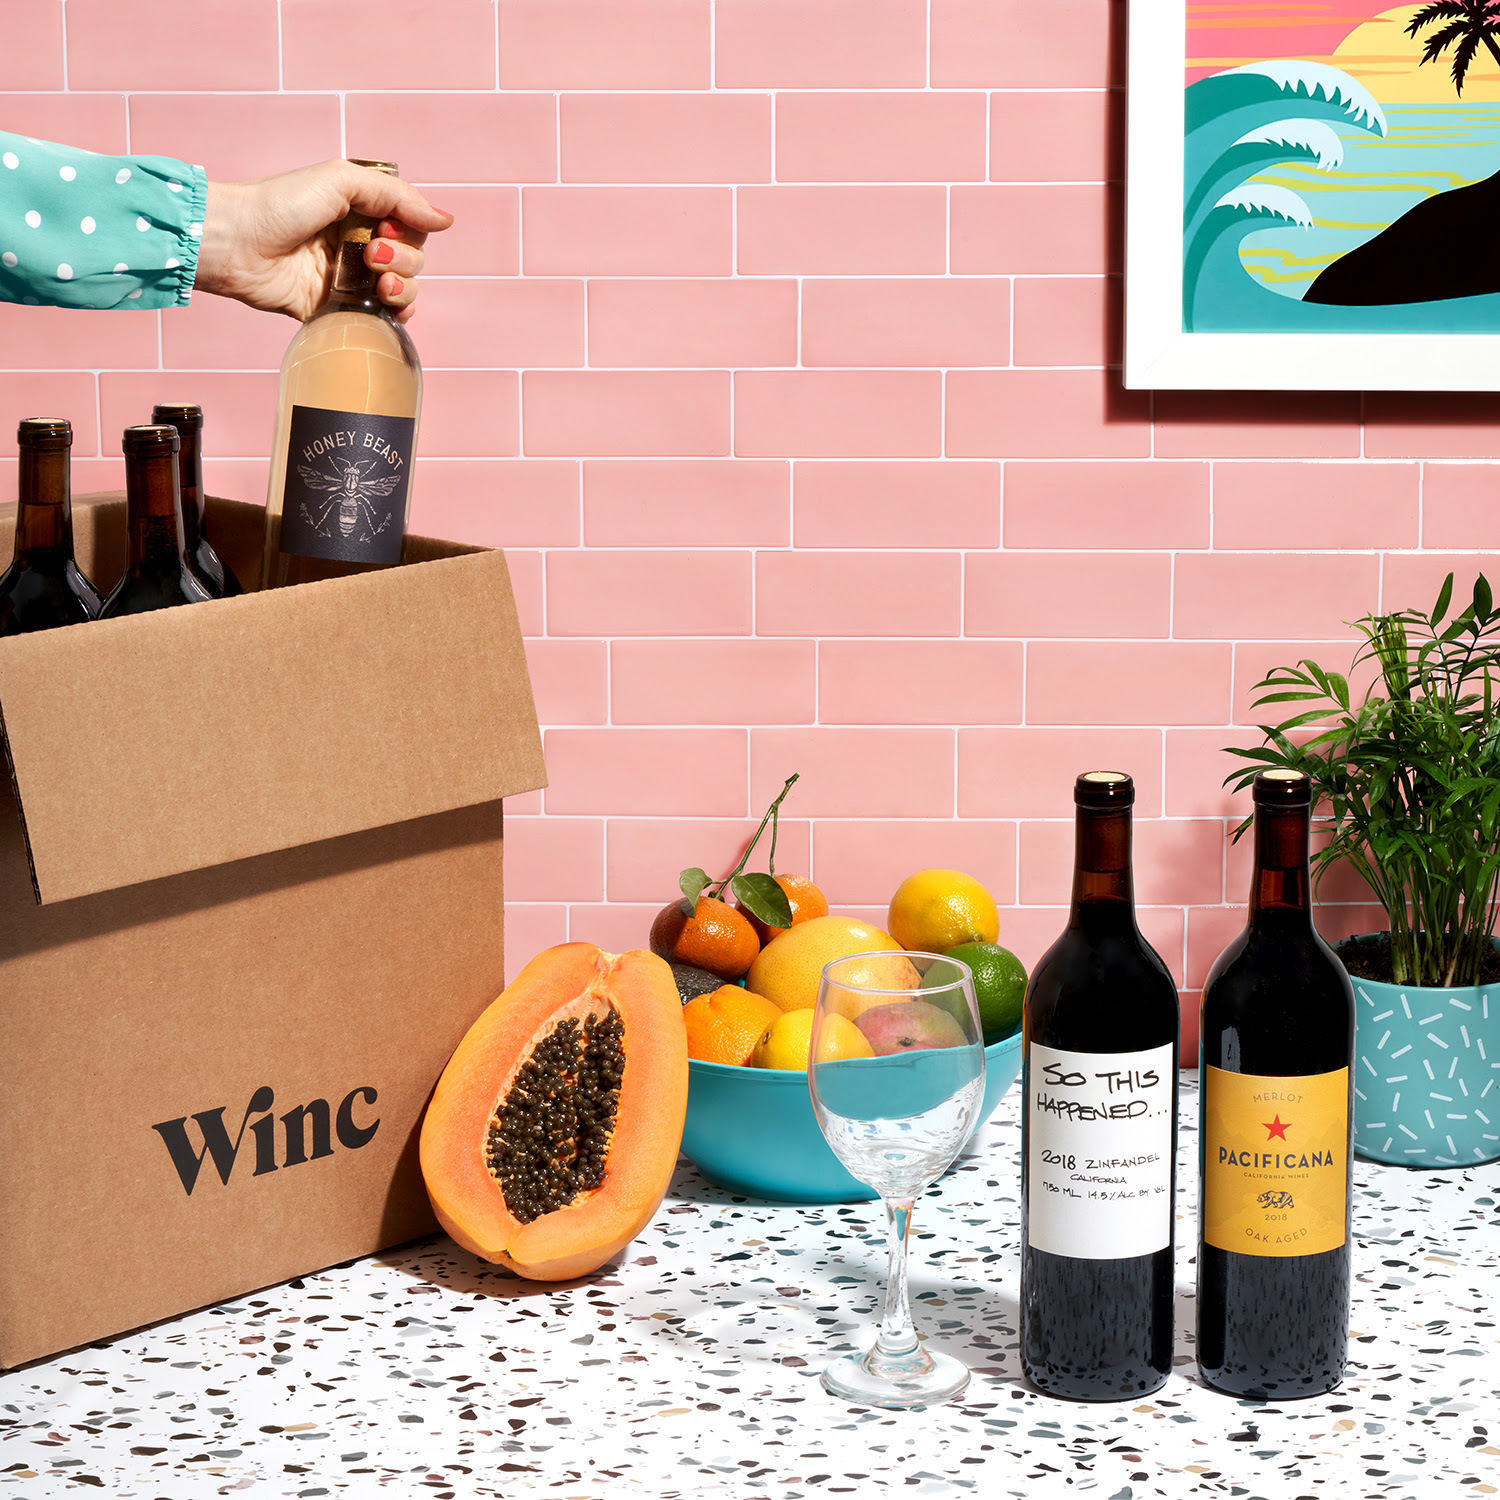 winc wine deals